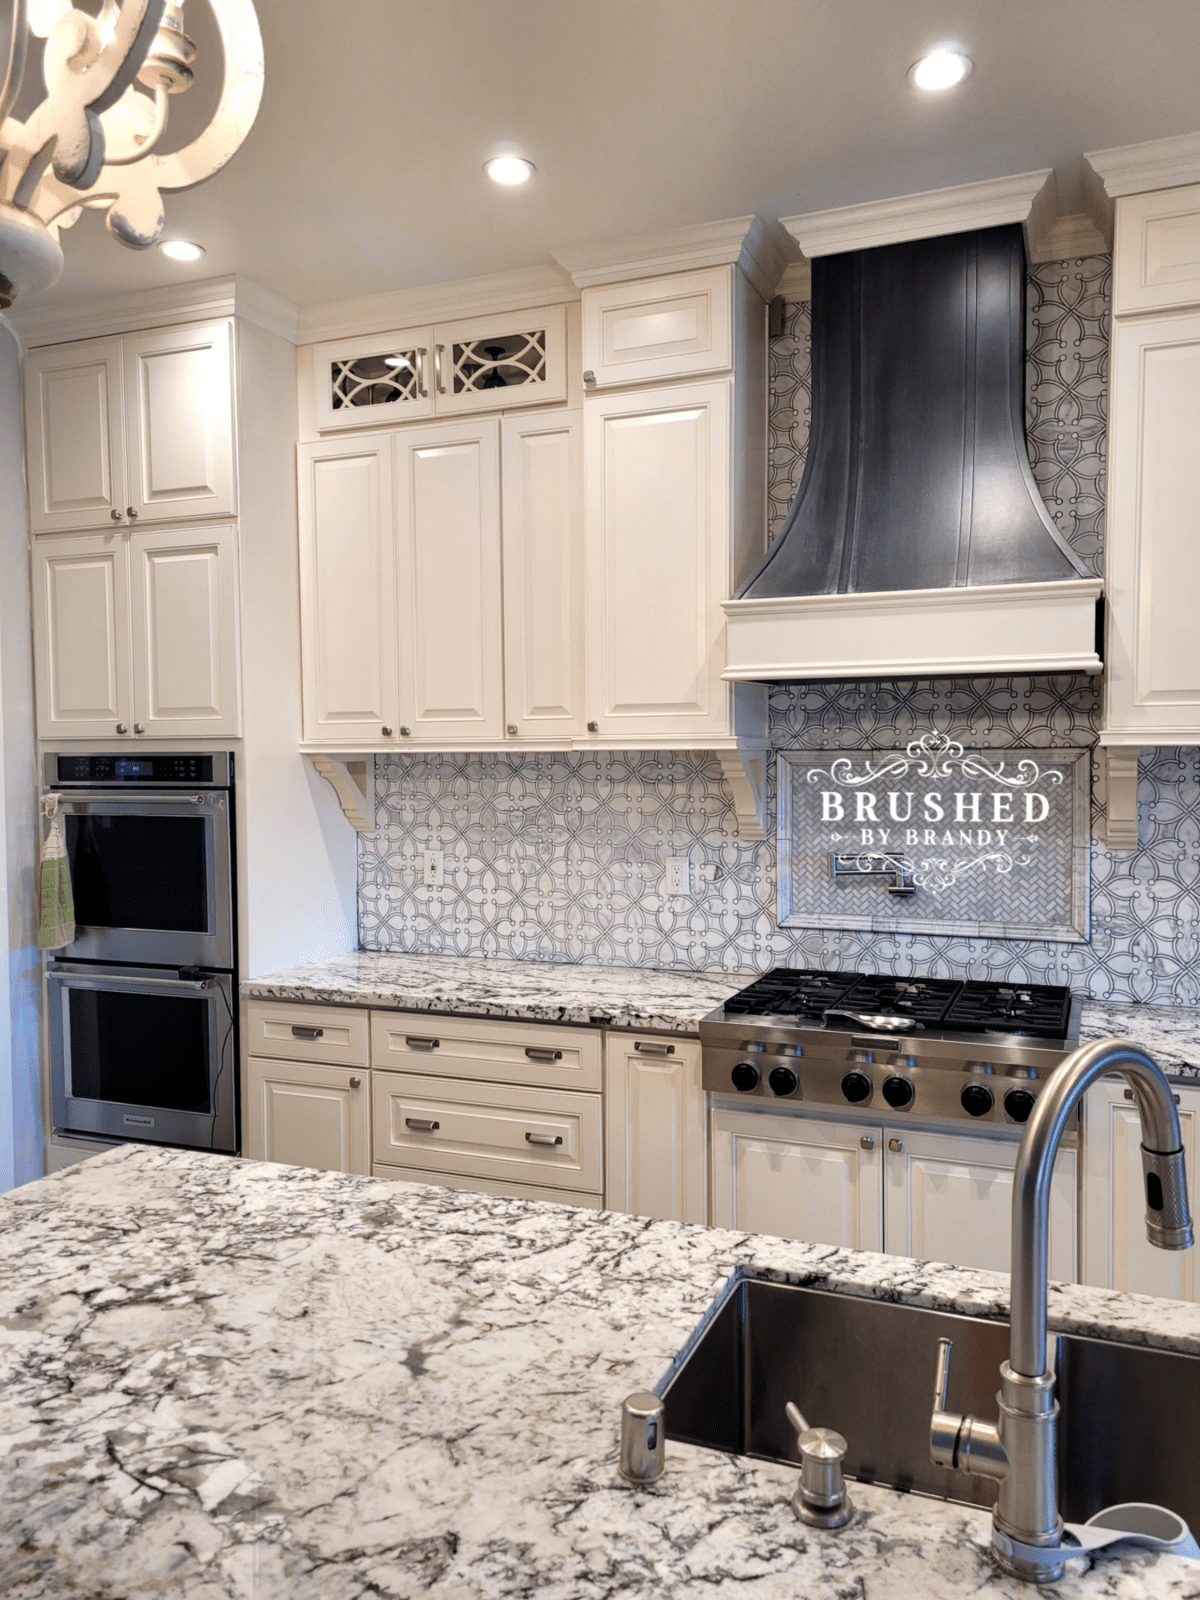 Upgrade Glass Kitchen Cabinet with PVC Fretwork Brushed by Brandy